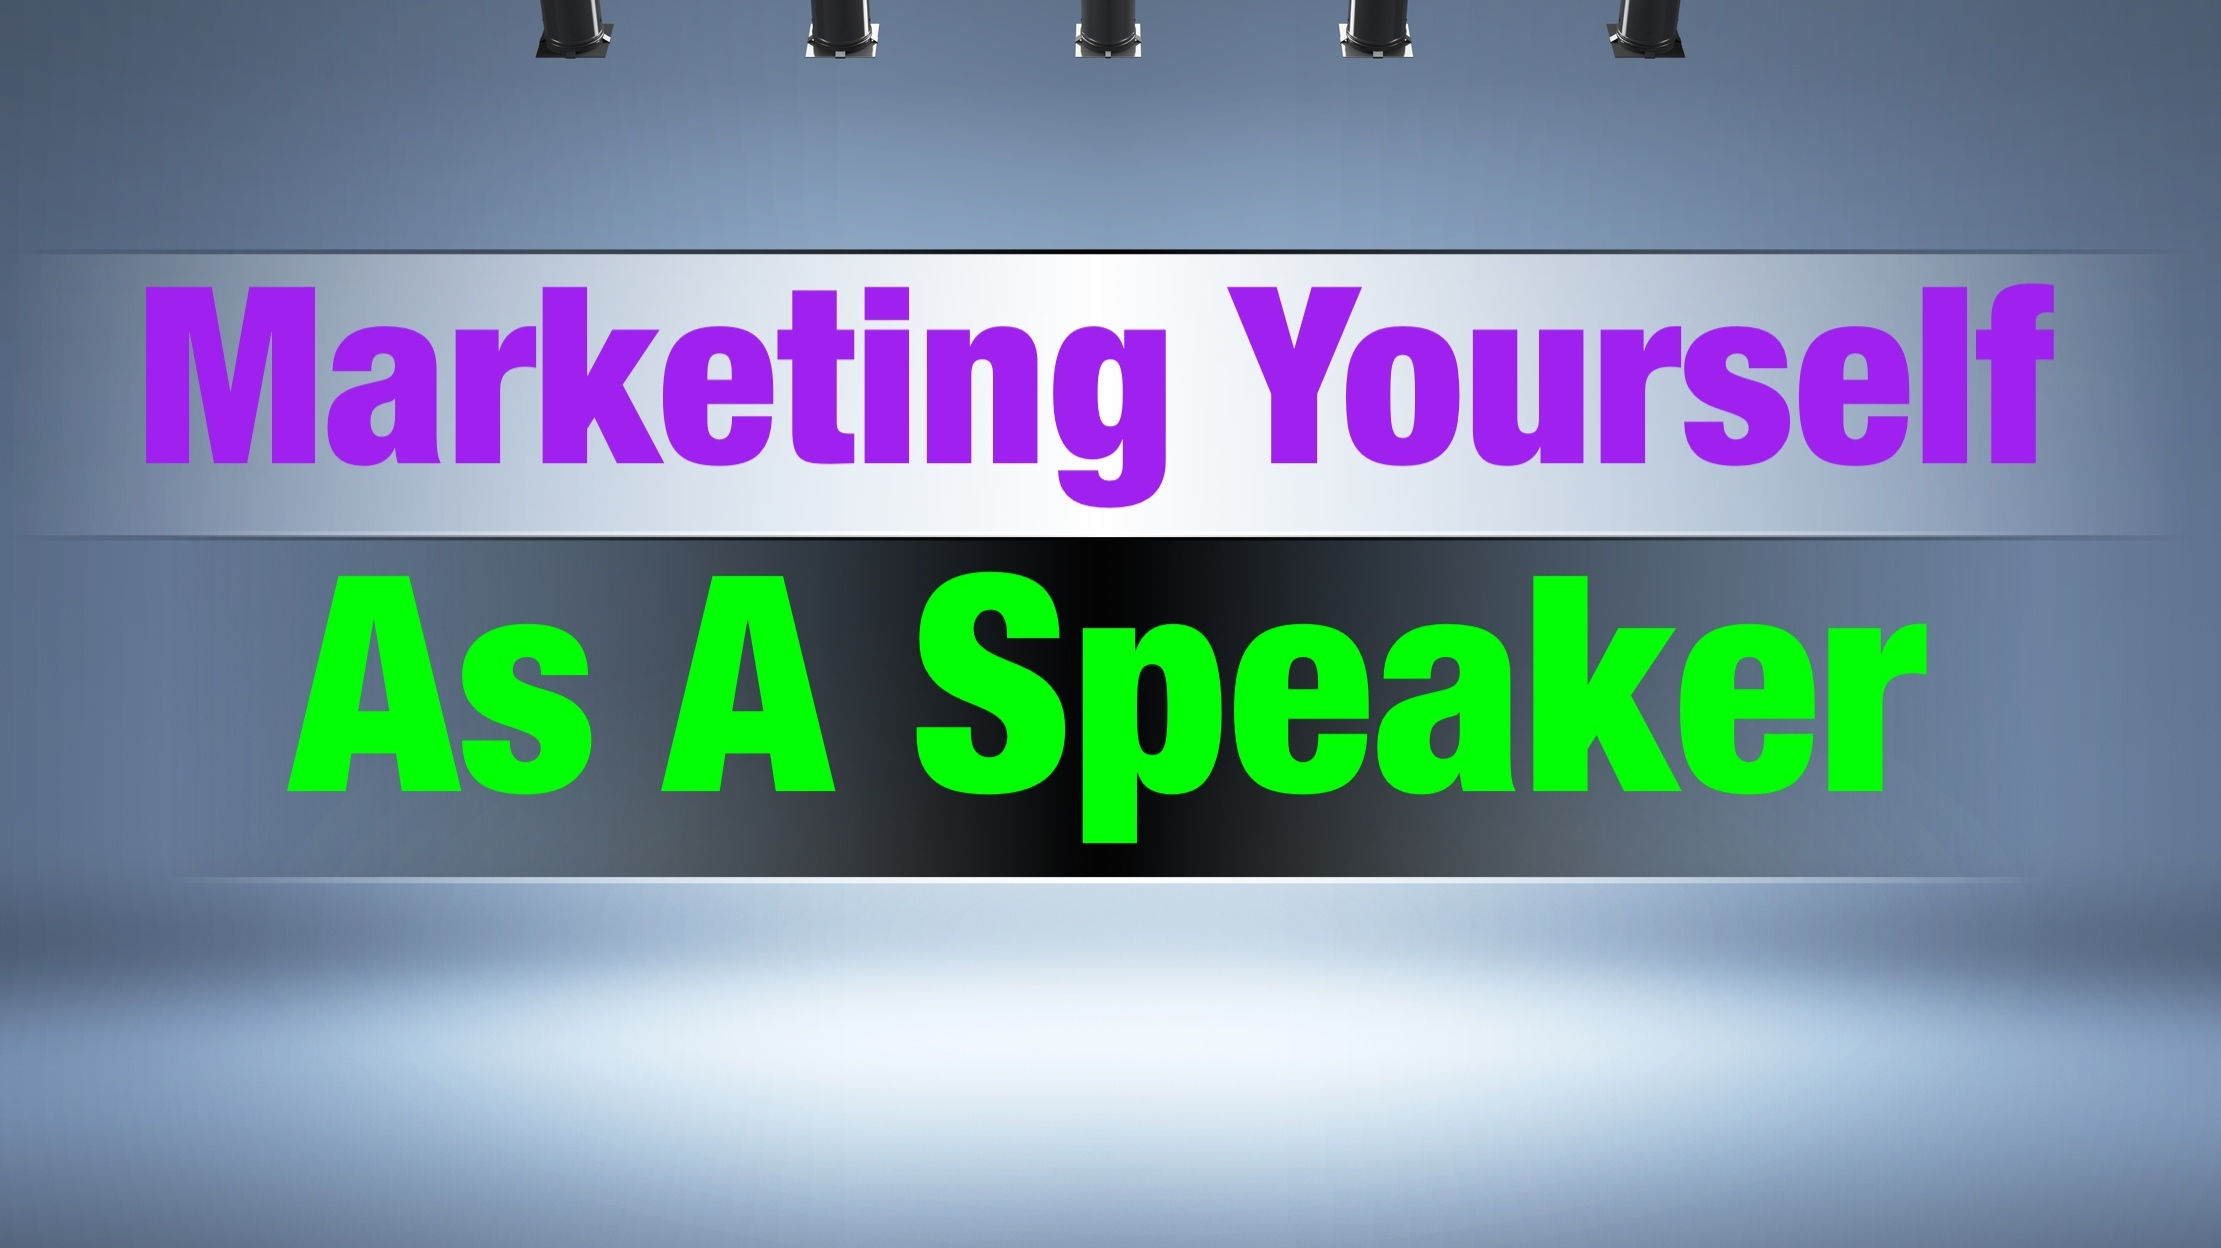 marketing yourself as a speaker getting paid speaking gigs marketing yourself as a speaker getting paid speaking gigs